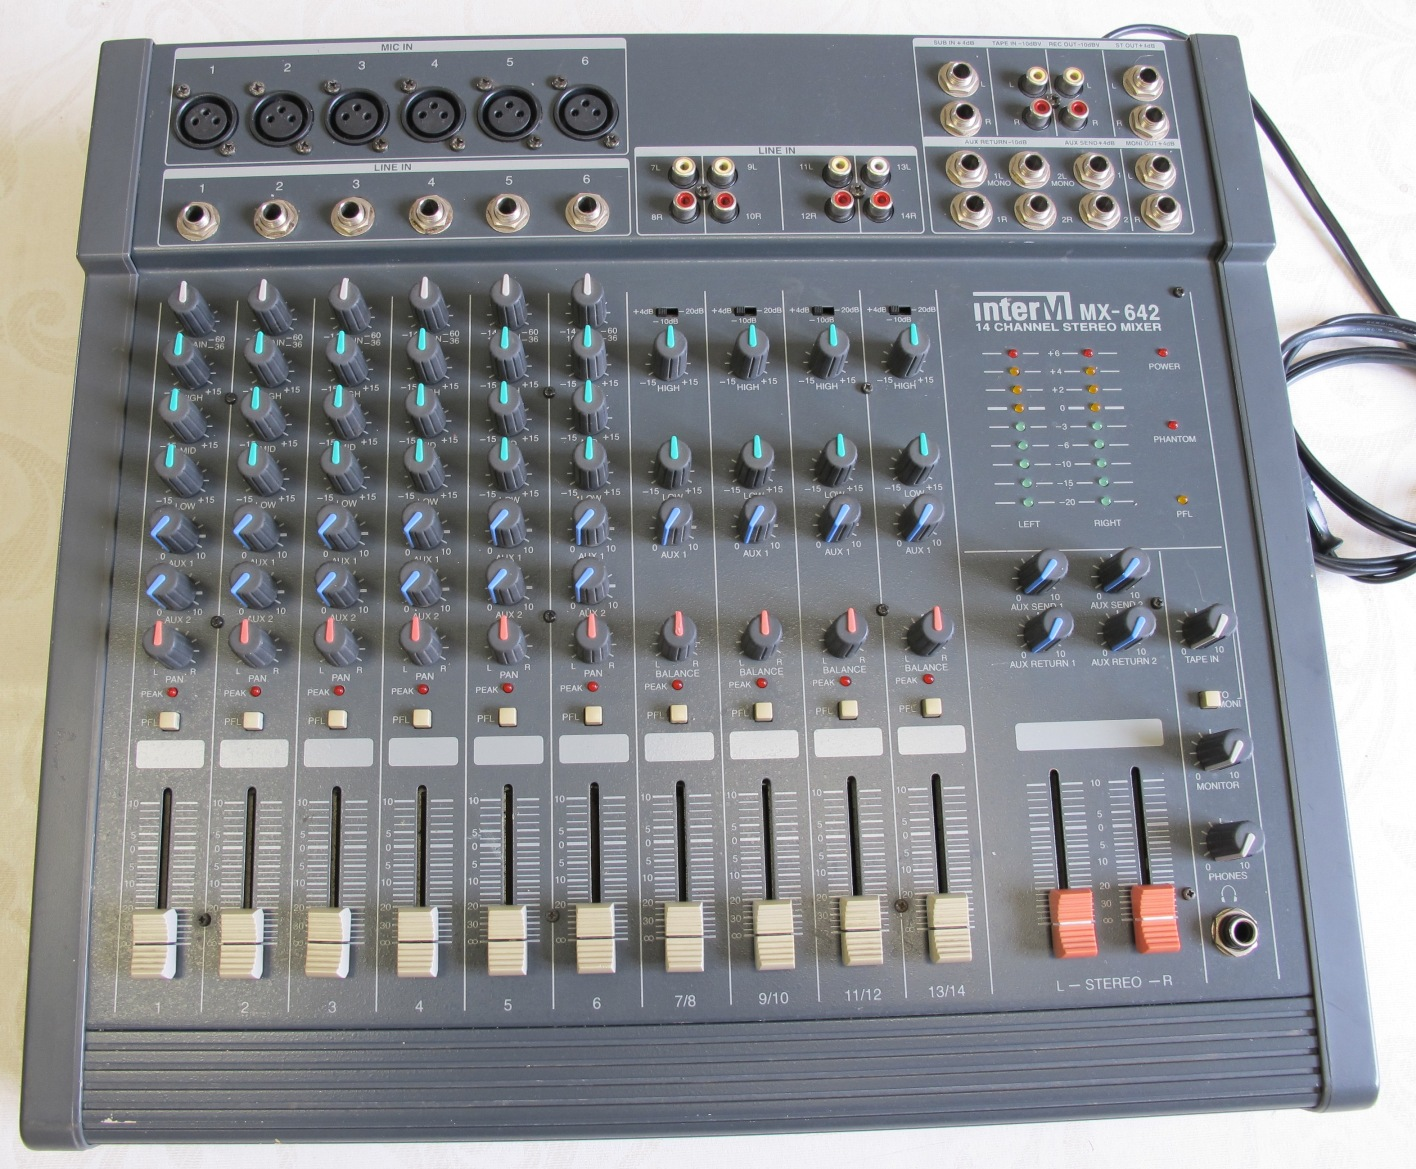 table de mixage inter m mx-642